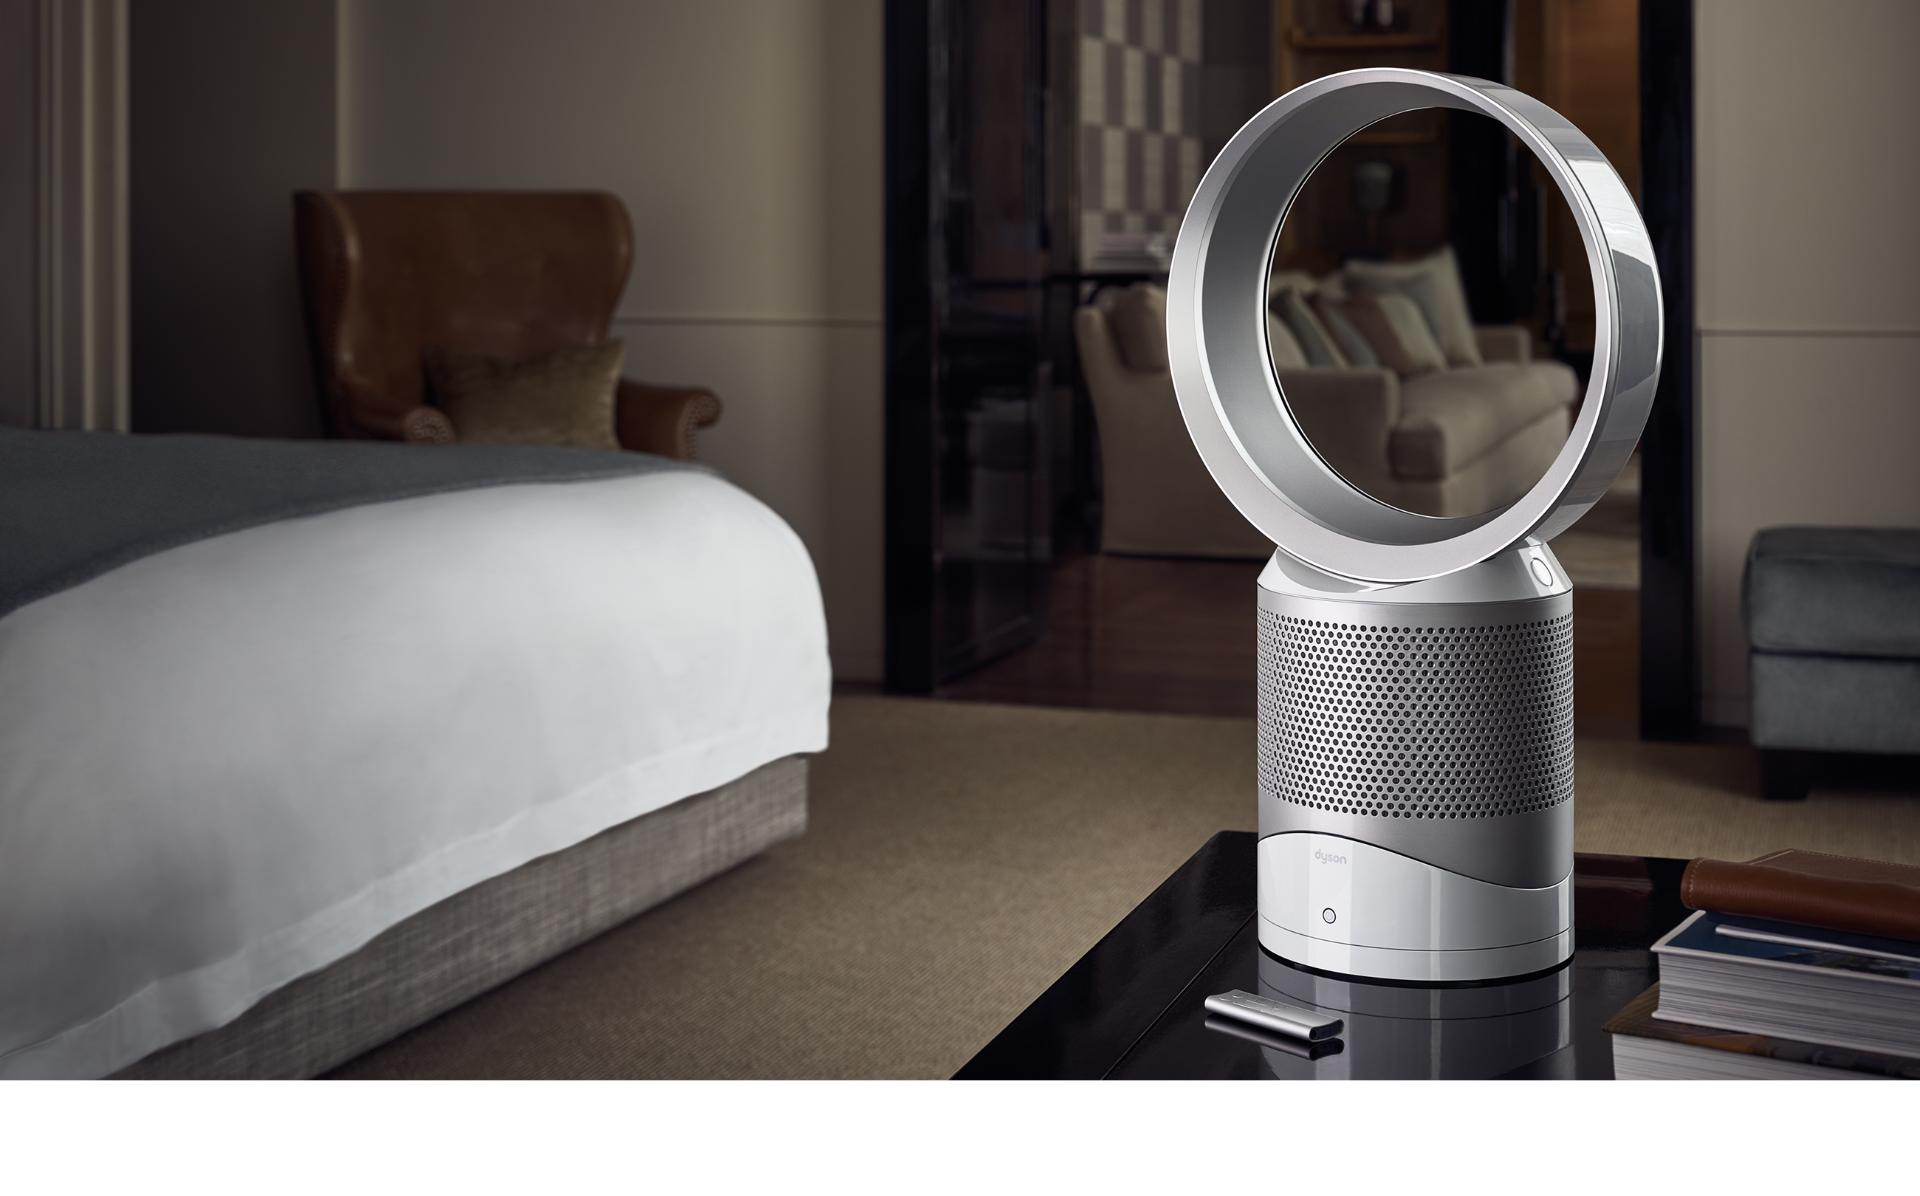 Dyson purifier on desk in hotel room